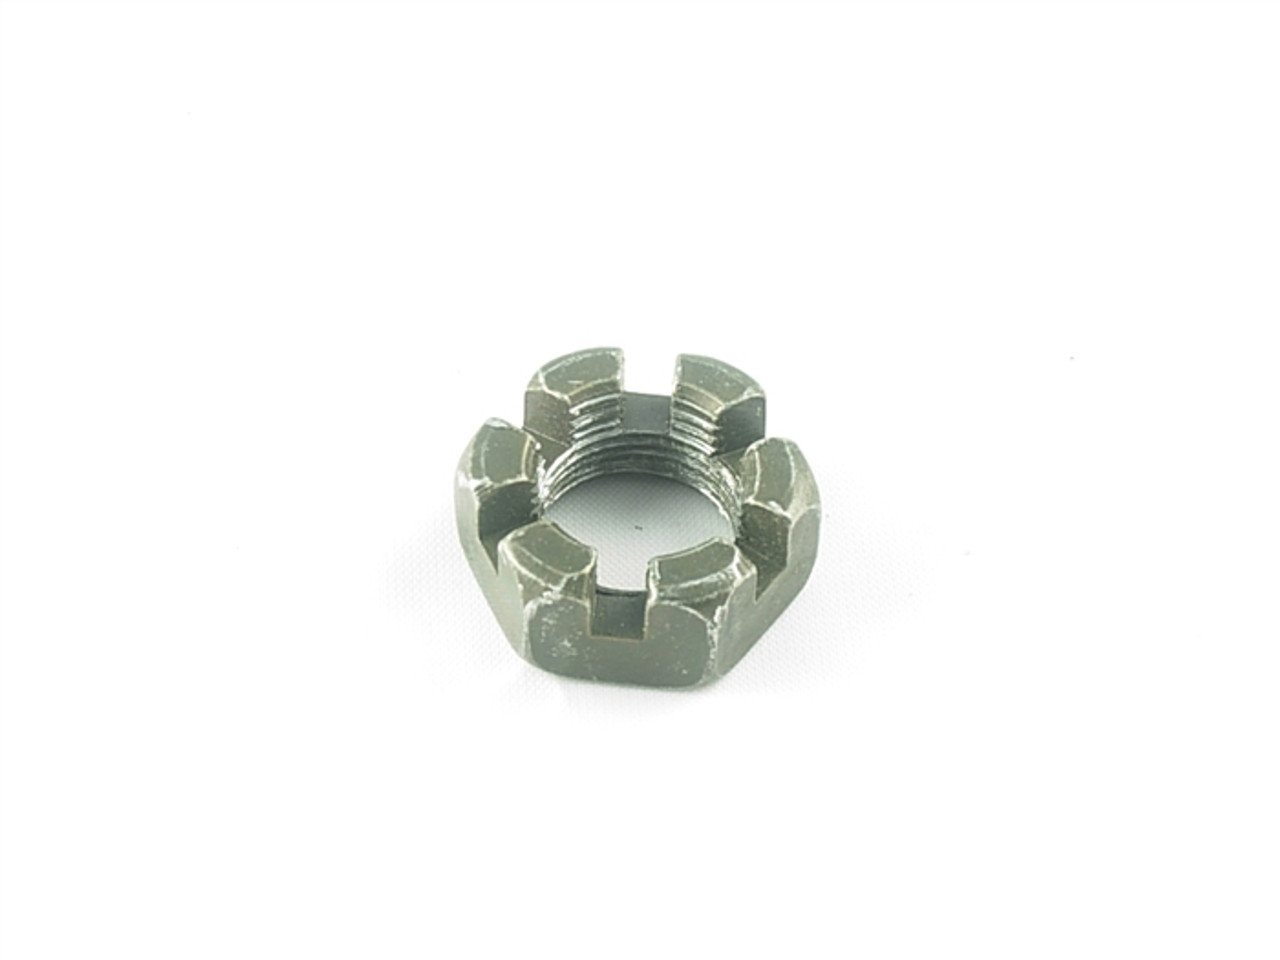 CASTLE NUT (FOR FRONT WHEEL) 10353-A20-11